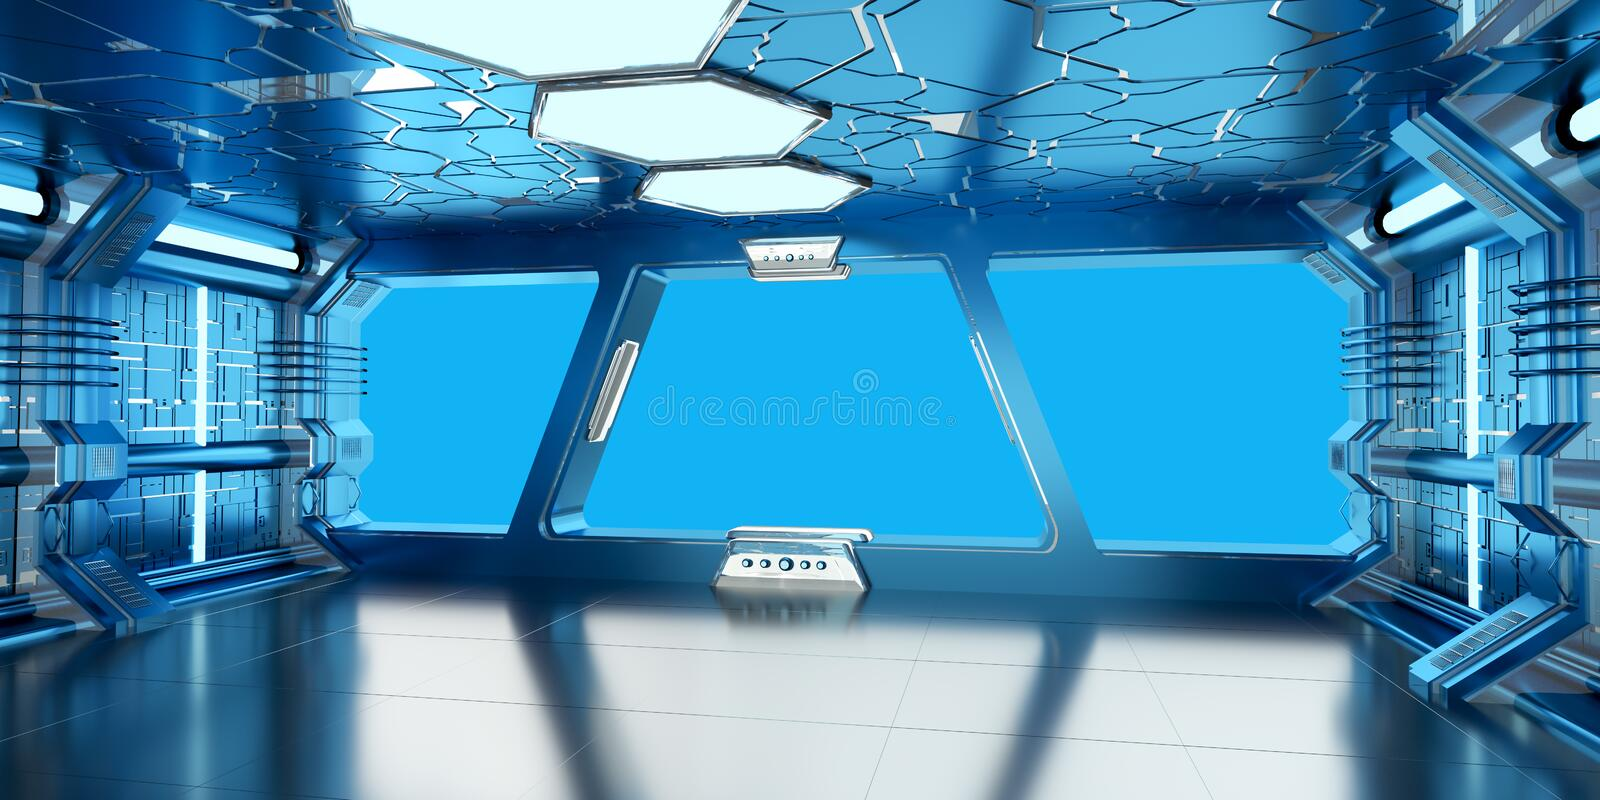 Spaceship blue and white interior 3D rendering royalty free illustration